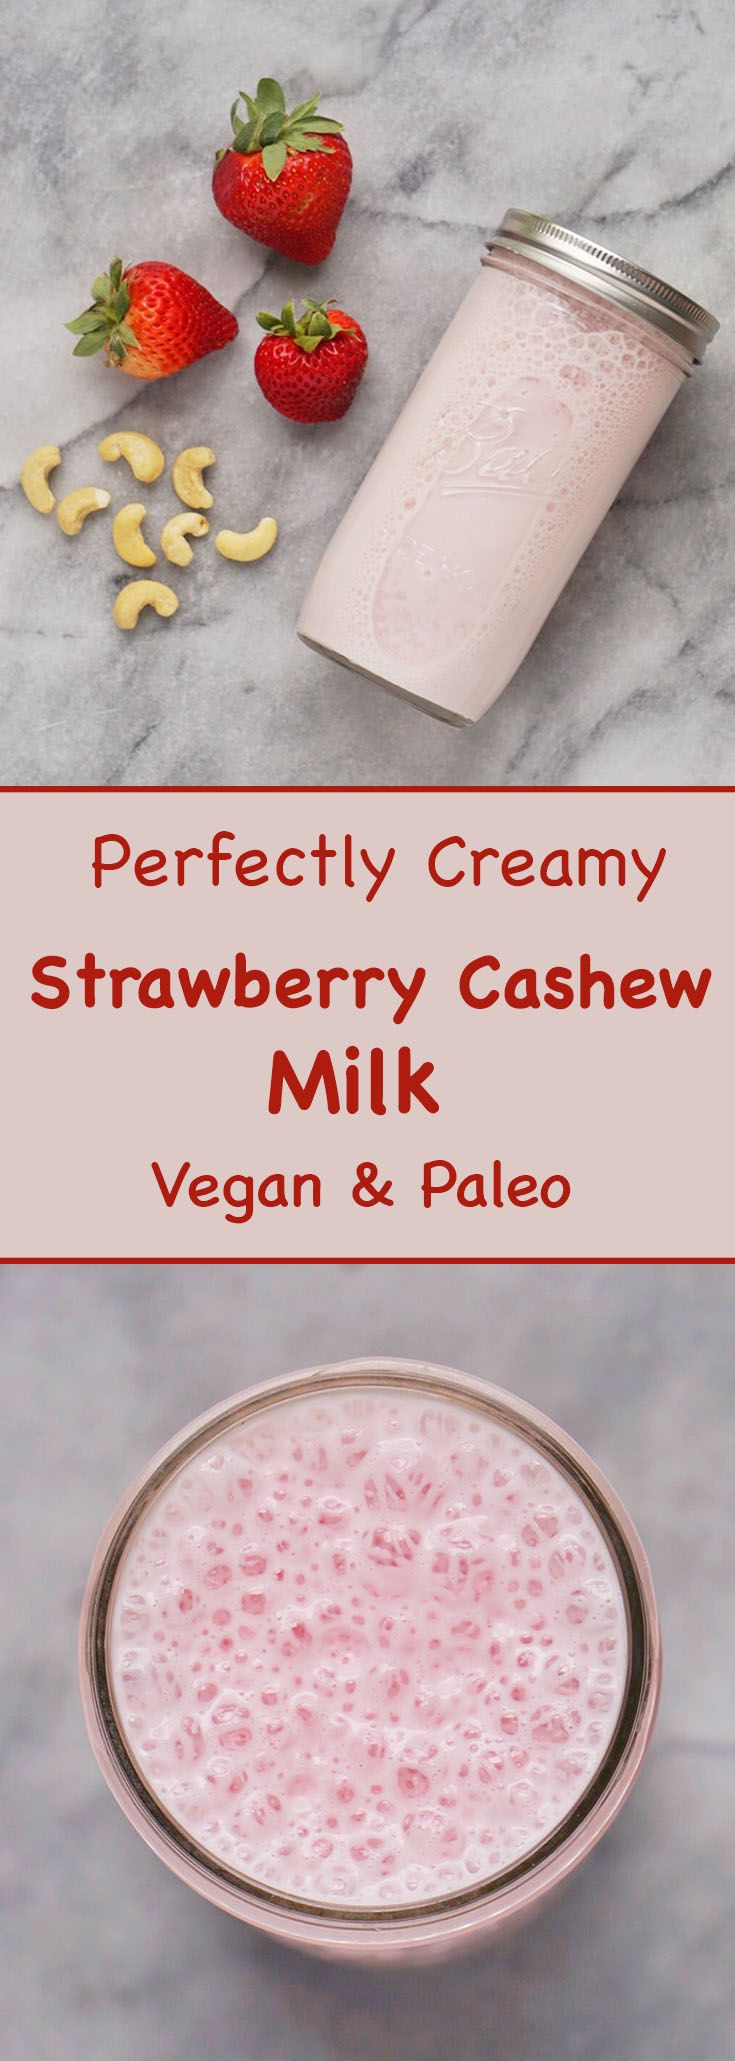 This perfectly creamy and delicious homemade strawberry cashew milk is made with only two simple ingredients and is free of refined sugar, dairy and gluten.